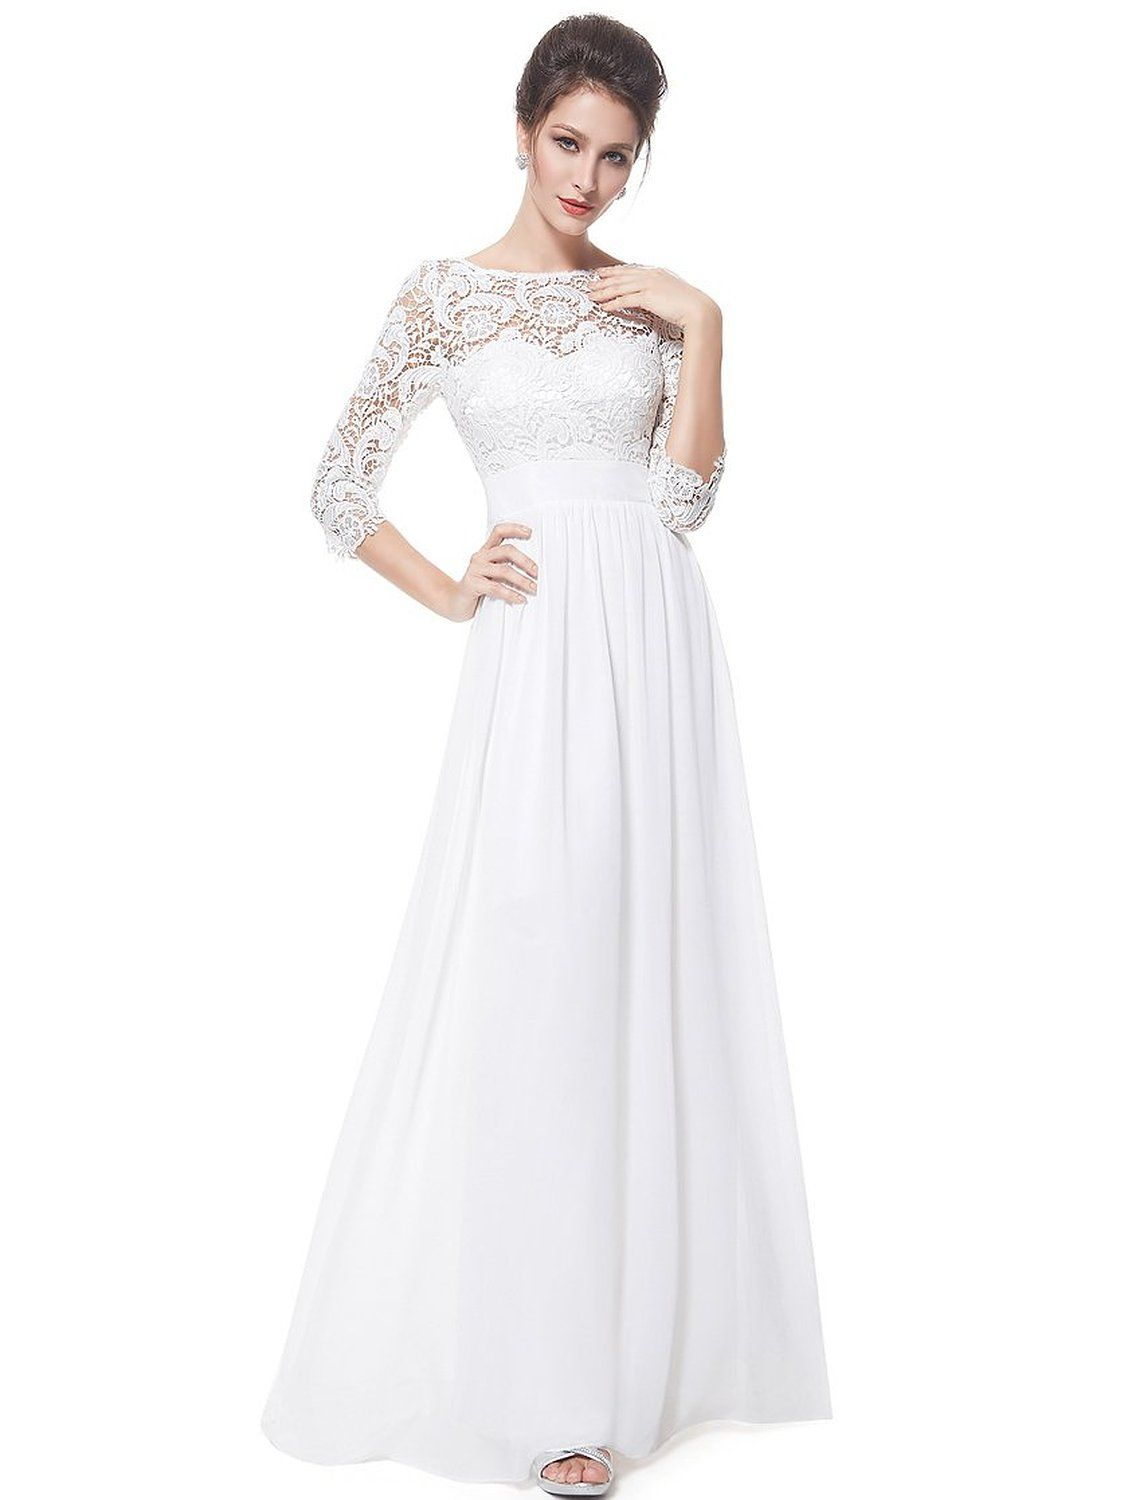 5889df56 Ever Pretty Women's Lace Long Sleeve Floor Length Evening Dress 08412 at  Amazon Women's Clothing store: